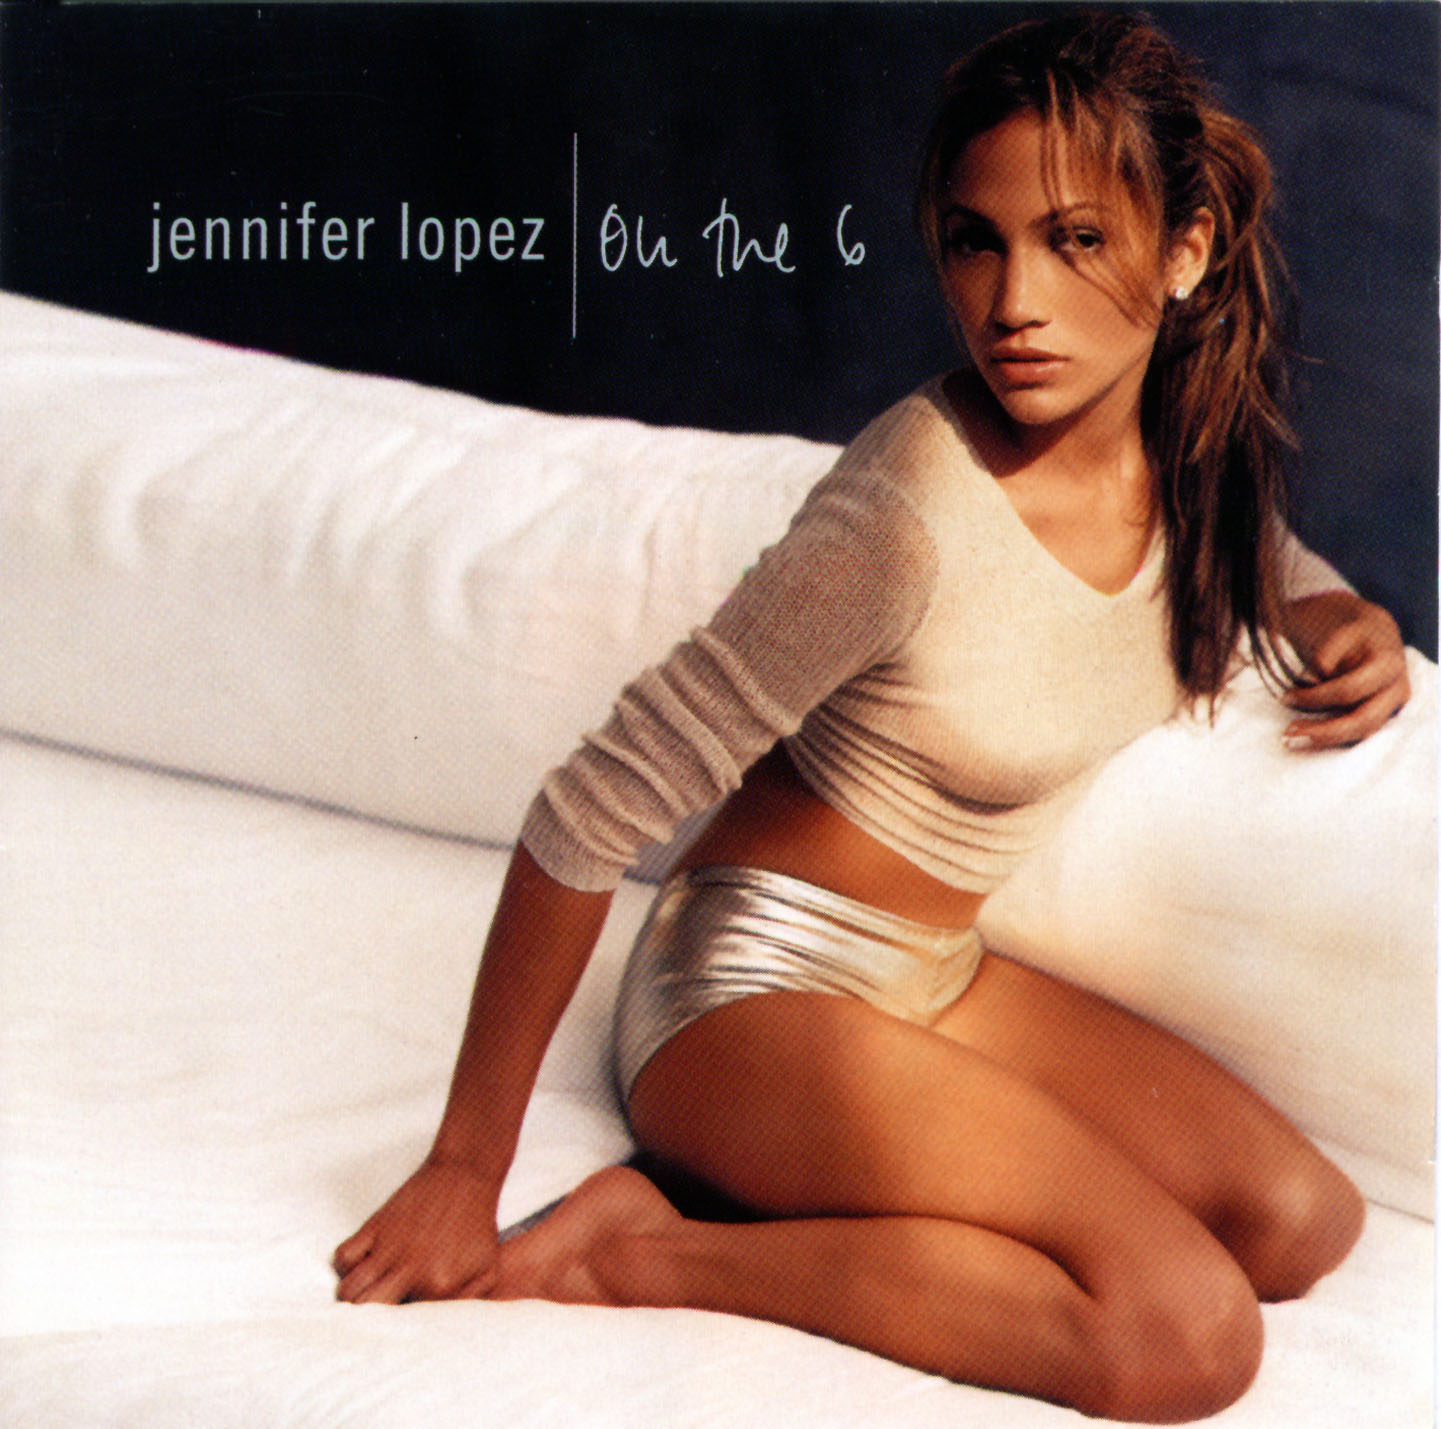 jennifer lopez on the 6 front